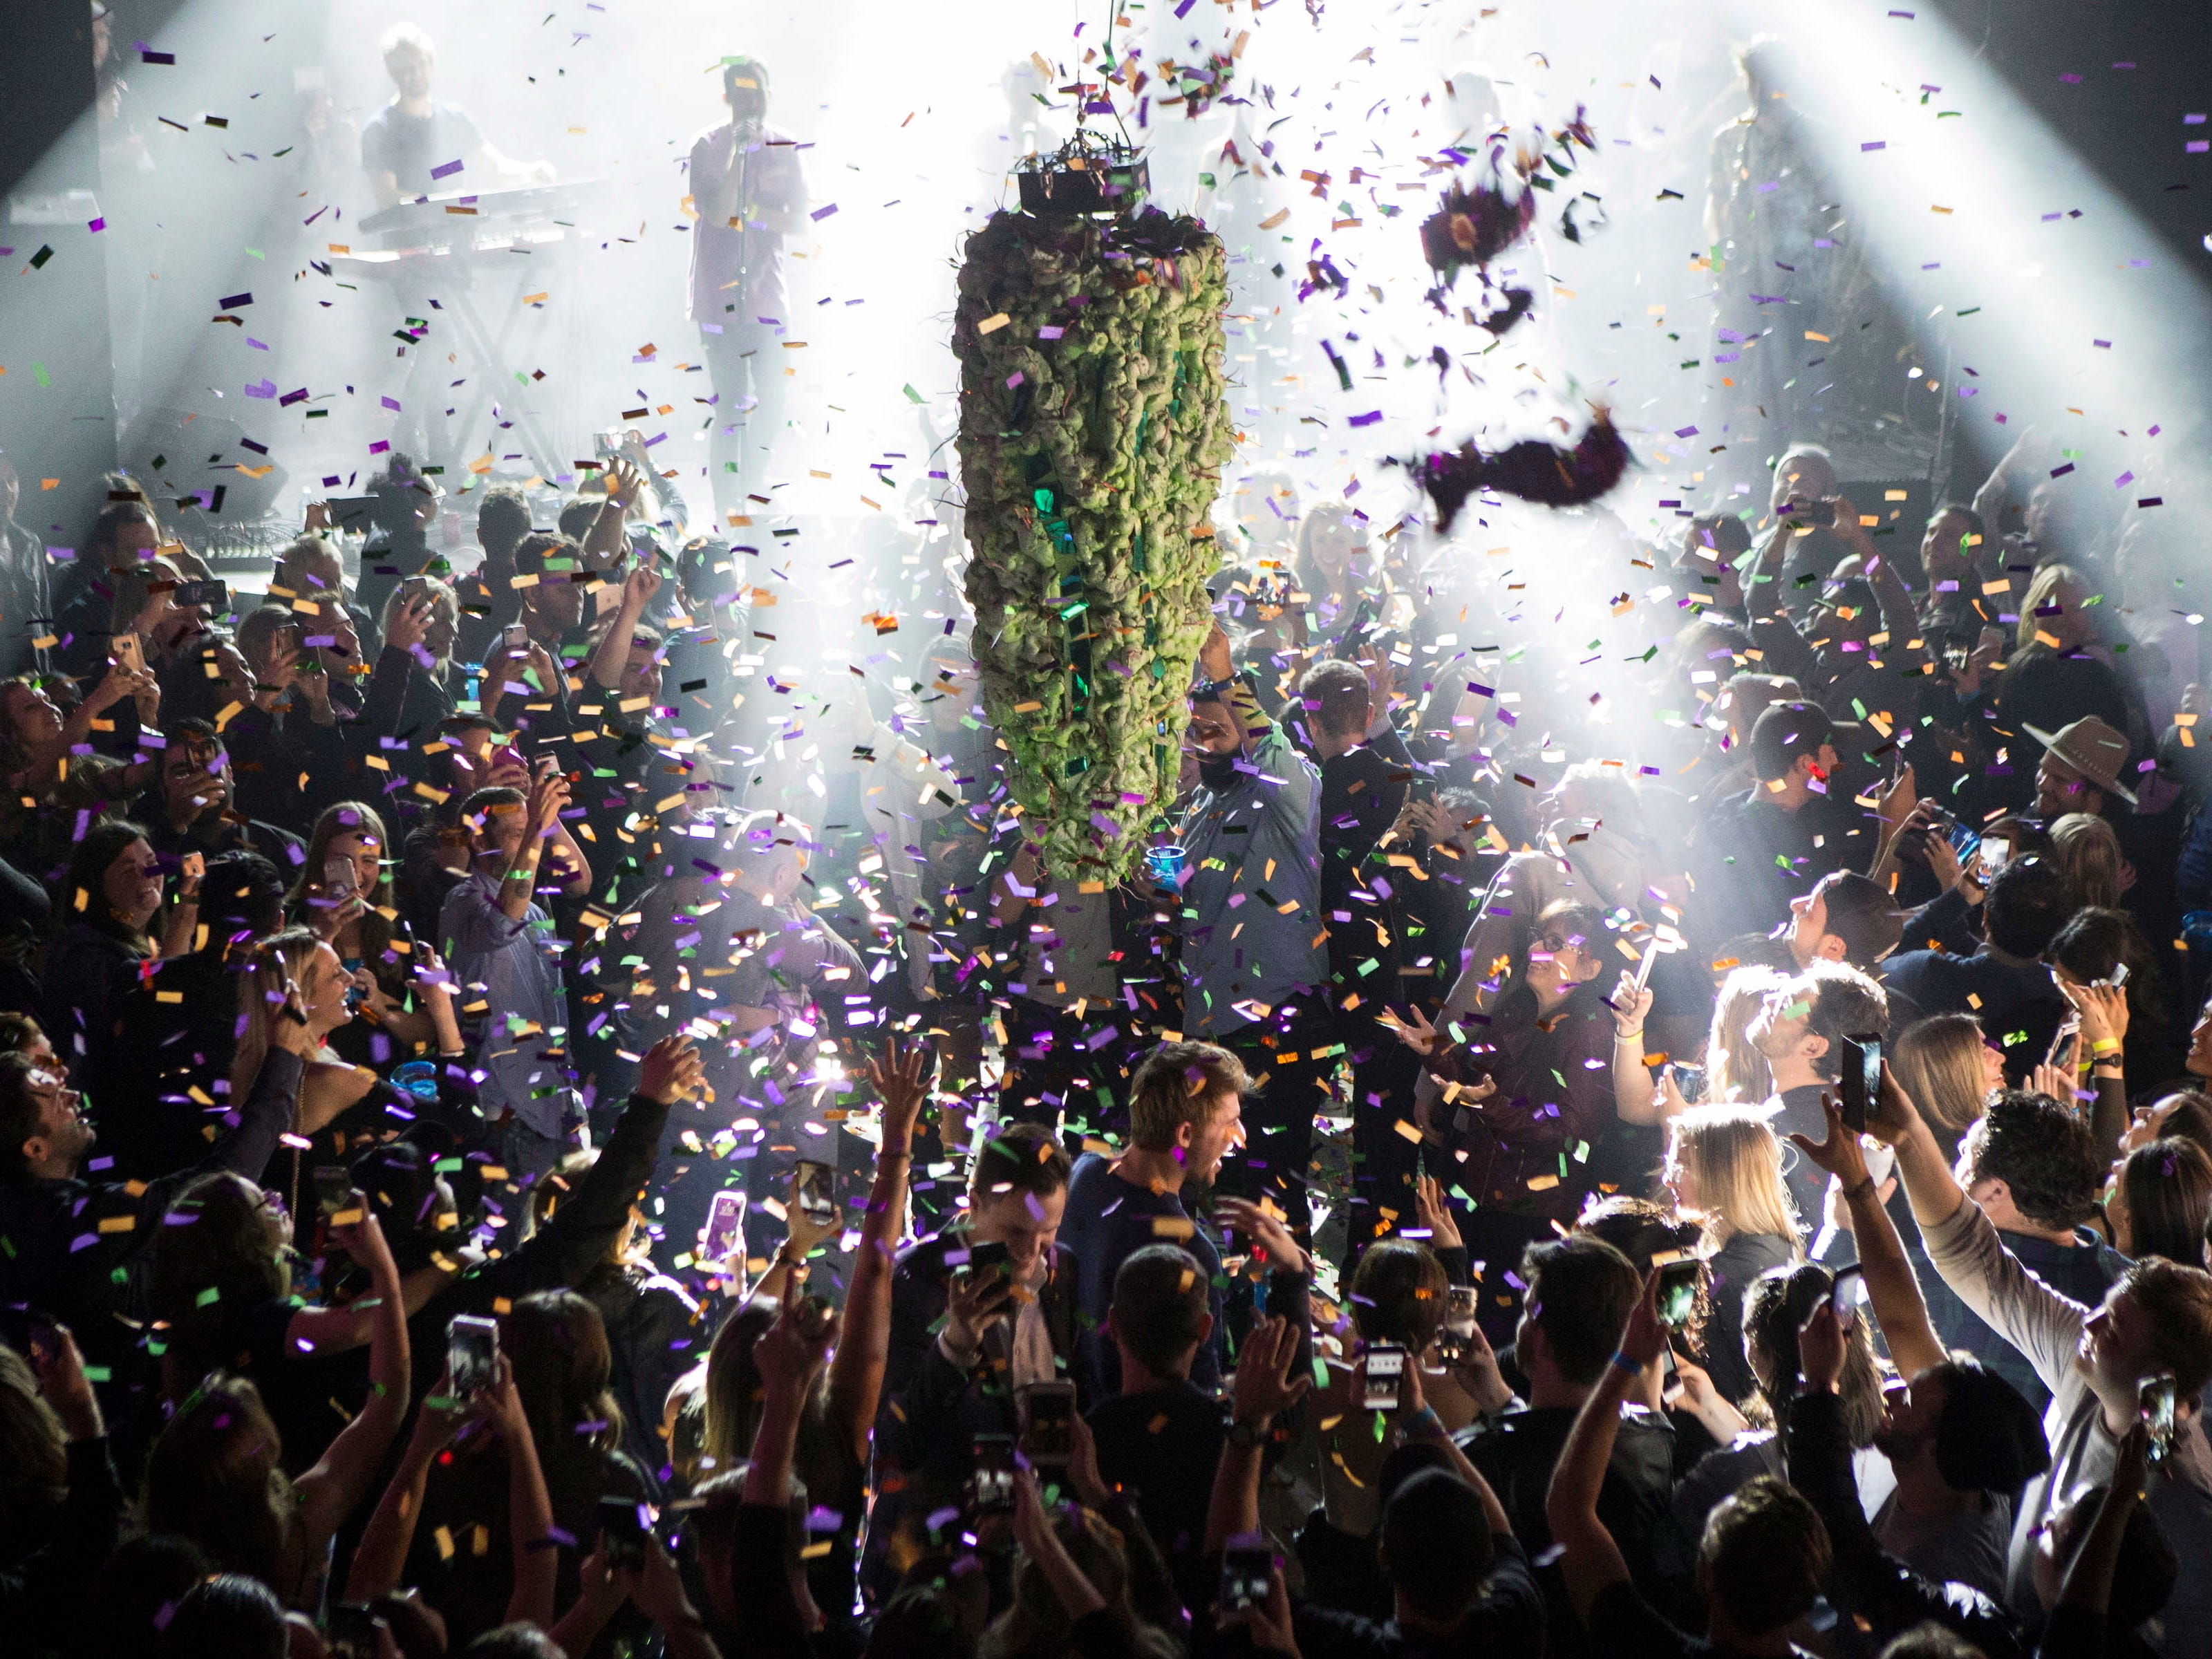 A depiction of a cannabis bud drops from the ceiling at Leafly's countdown party in Toronto on Wednesday, Oct. 17, 2018, as midnight passes and marks the first day of the legalization of cannabis across Canada. (Chris Young/The Canadian Press via AP) ORG XMIT: CHY110